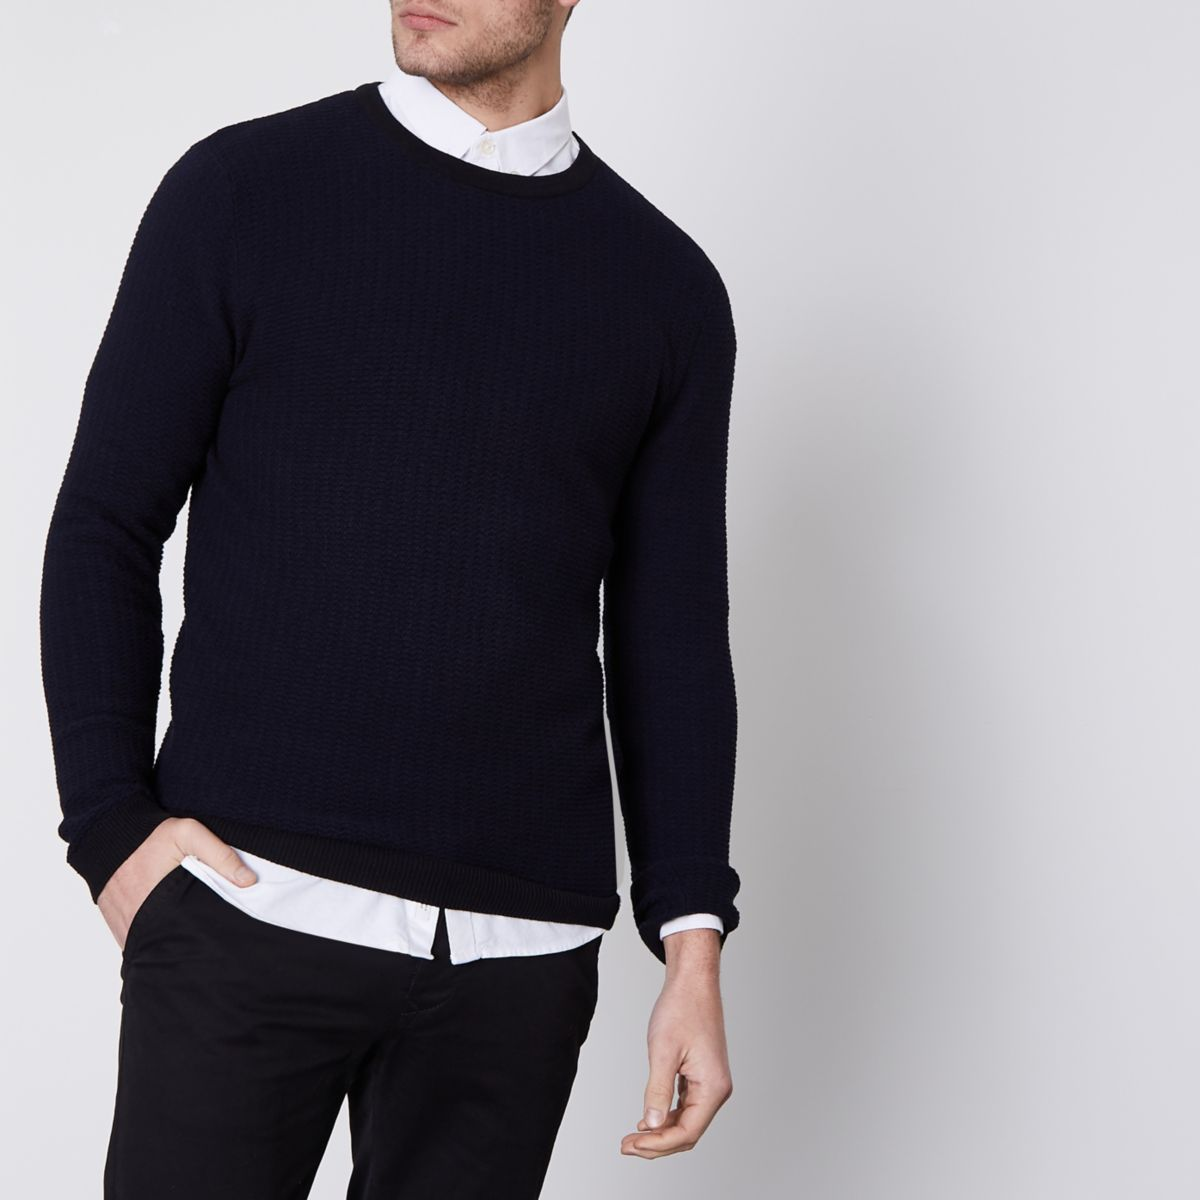 Navy Jack & Jones Premium waffle knit sweater